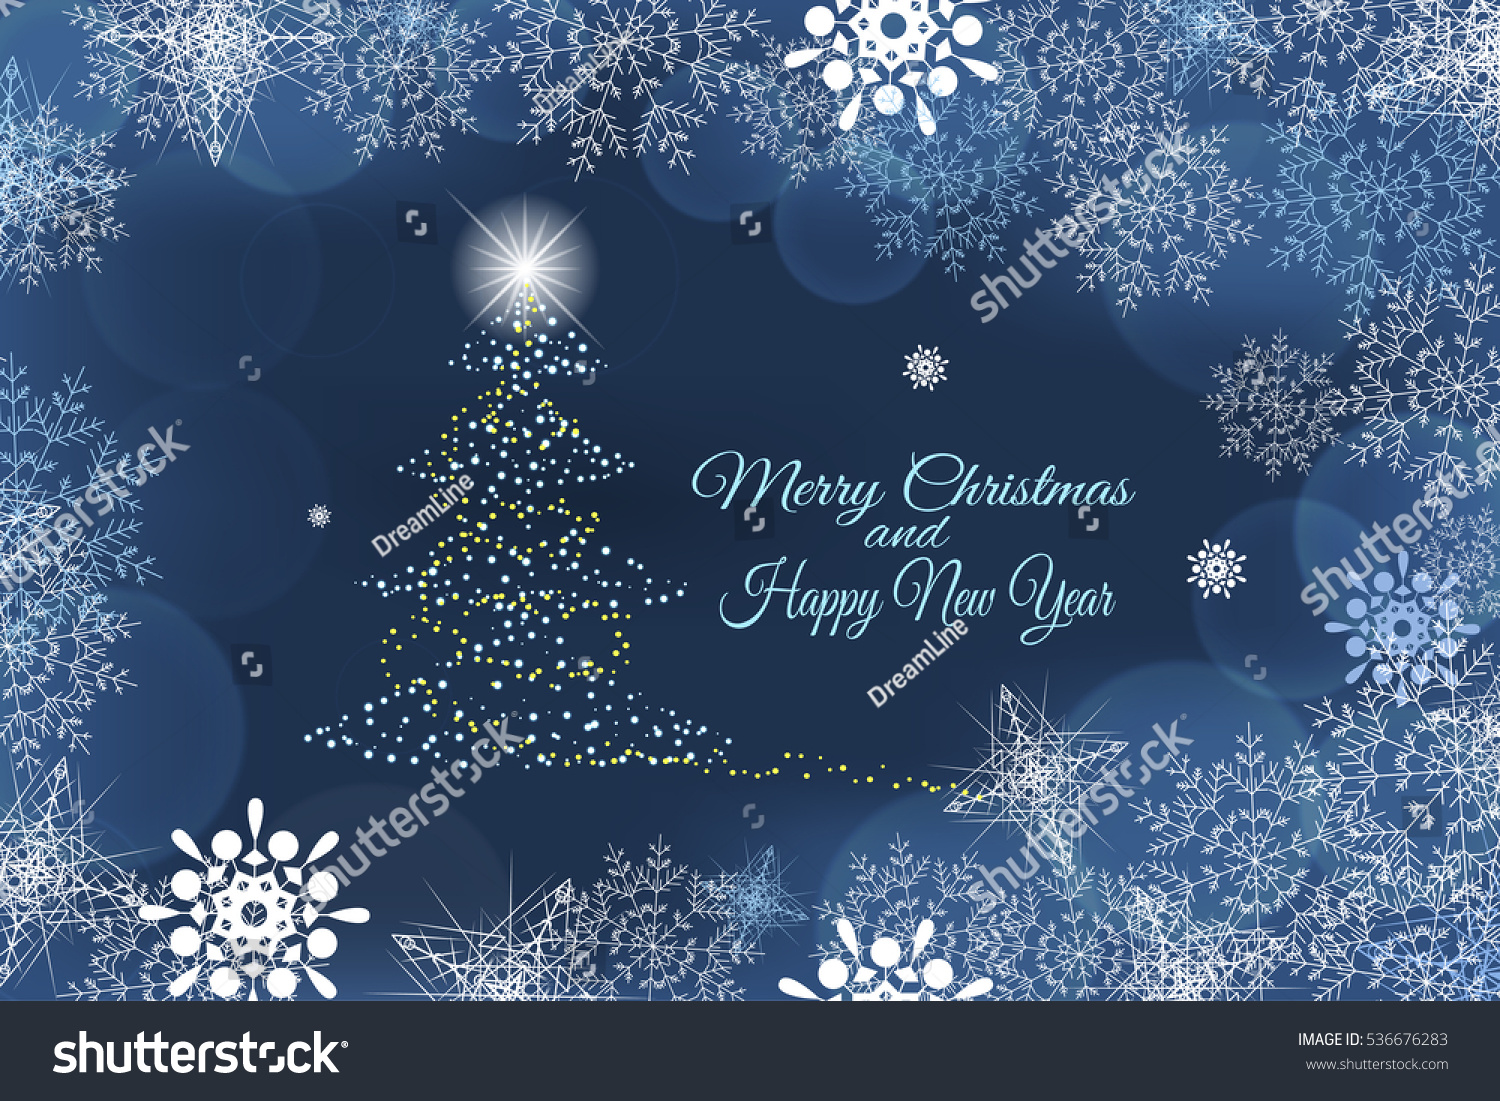 vector merry christmas and happy new year abstract blue background with christmas tree in the center